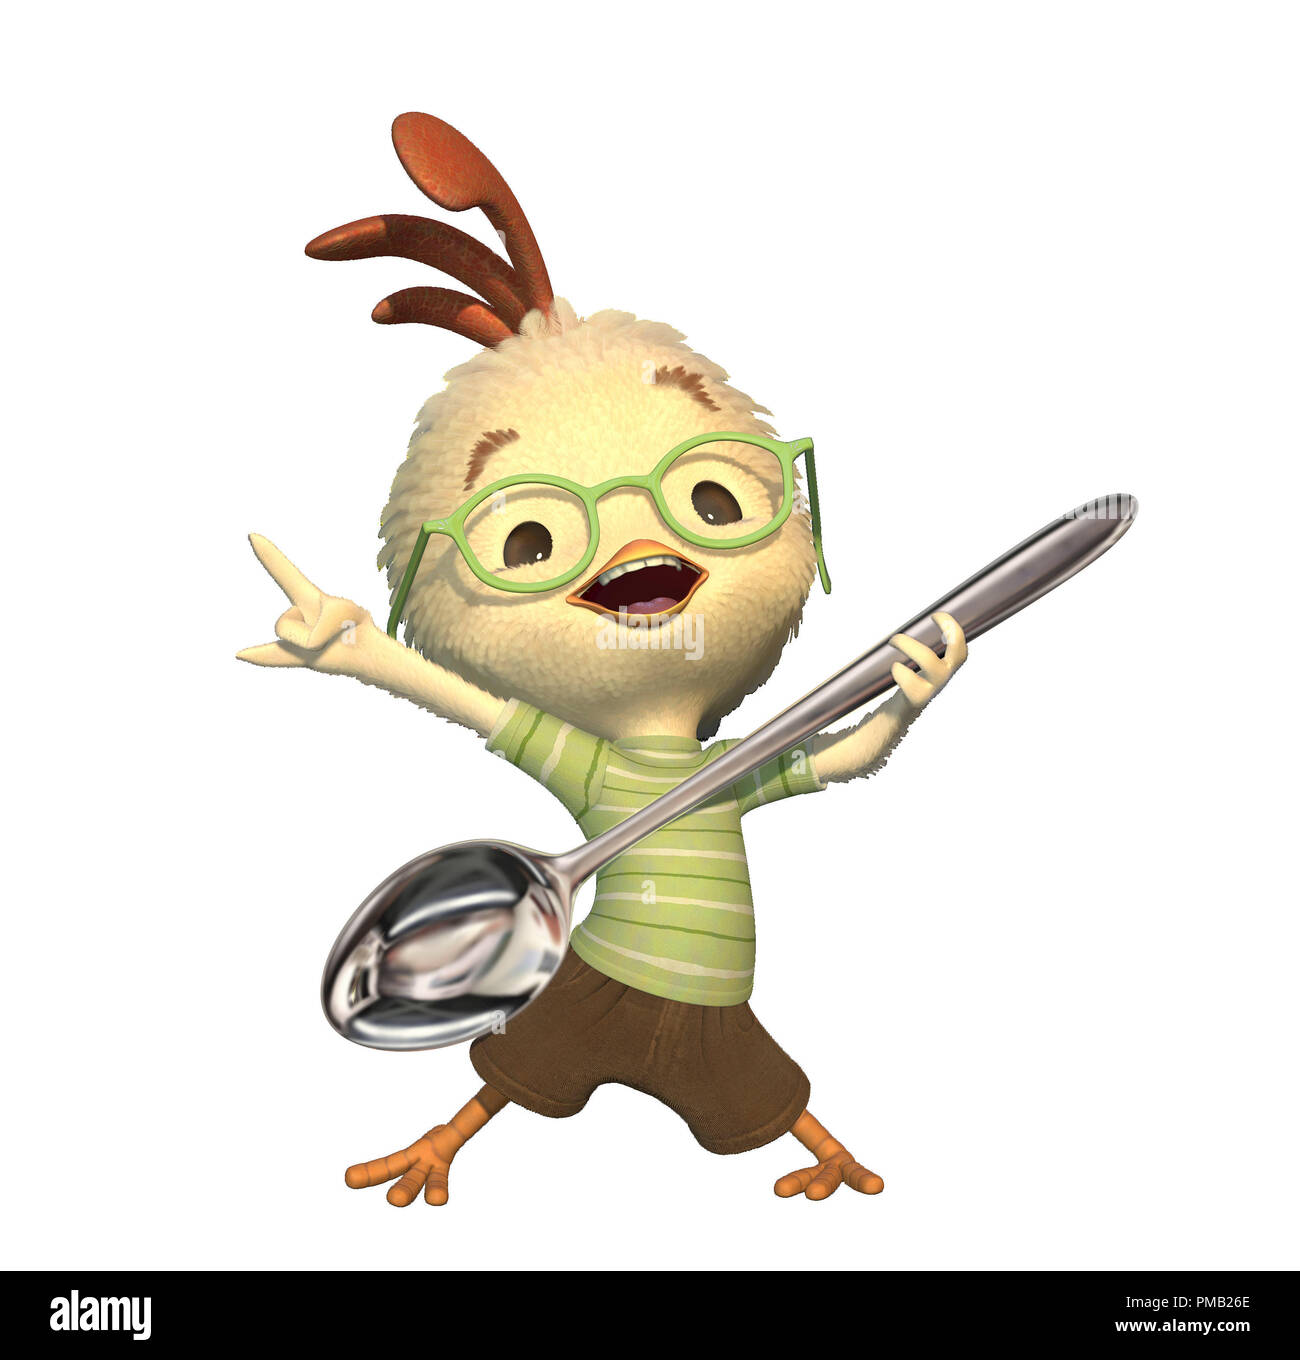 Final Frame; with the final look composed, the character is ready to be posed to match the story points.  'Chicken Little' (2005) - Stock Image